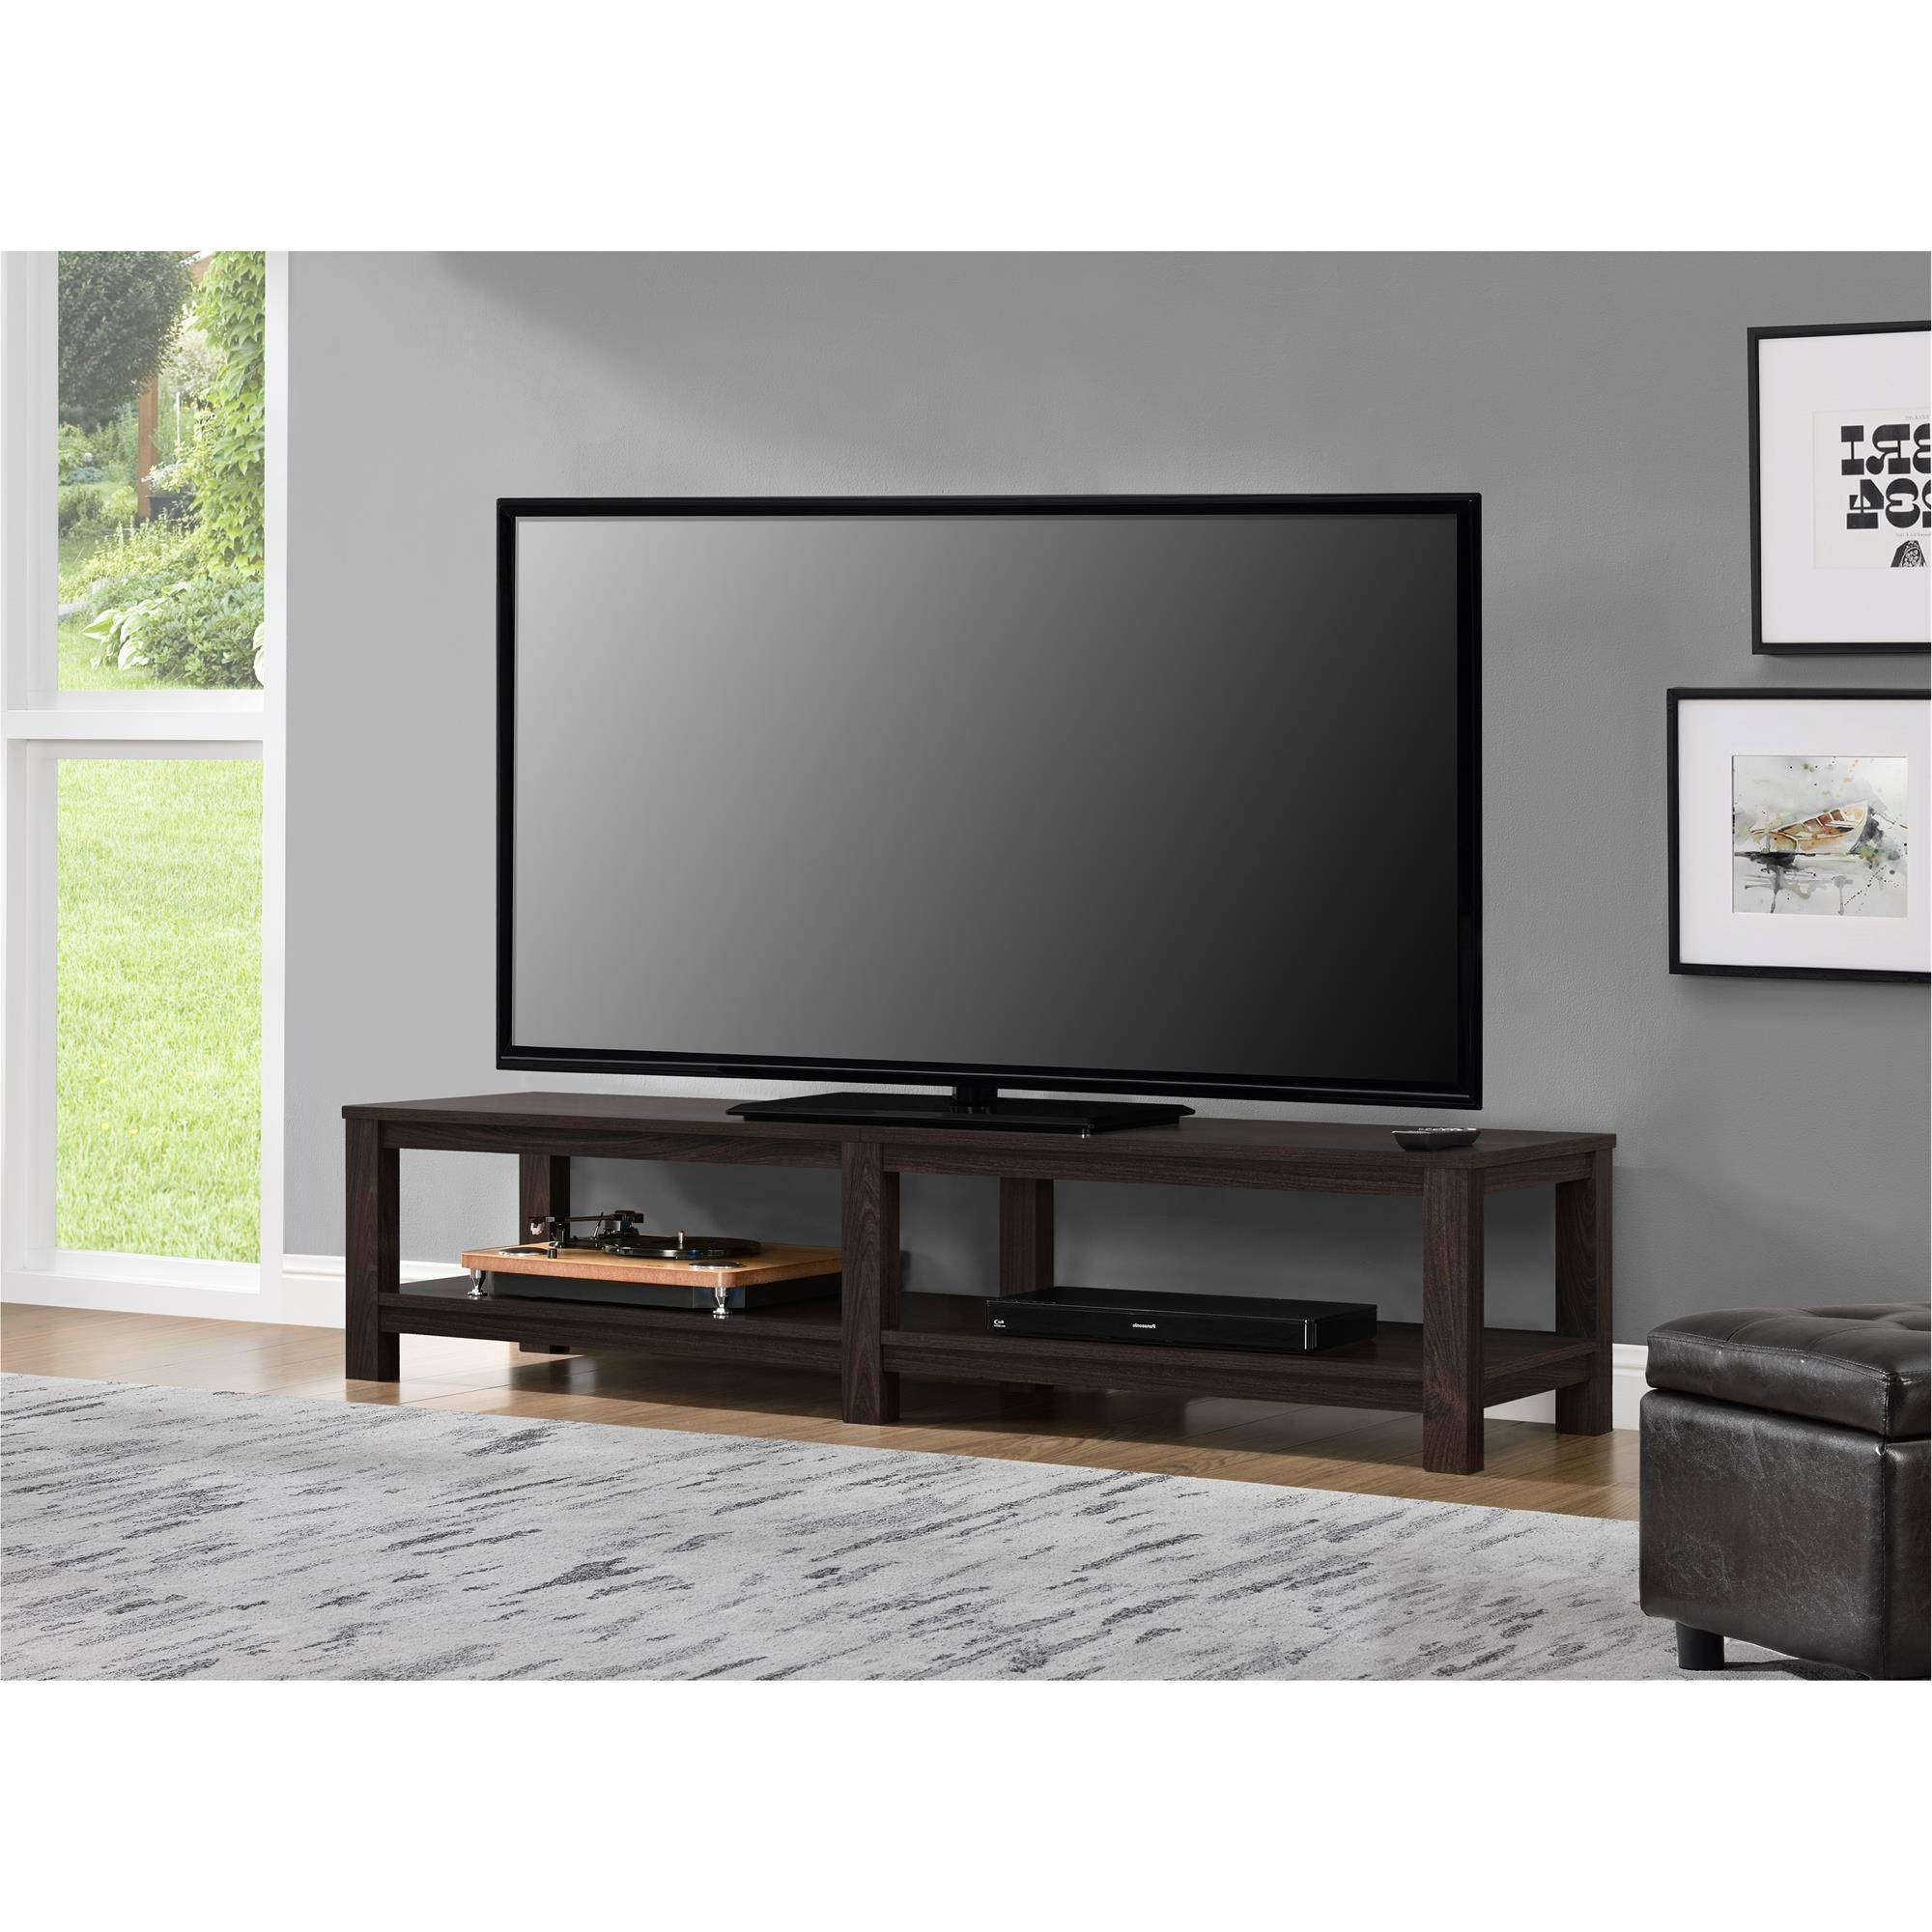 Bedroom Design : Magnificent Television Tables Corner Tv Shelf Low With Regard To Modern Tv Stands With Mount (View 11 of 15)